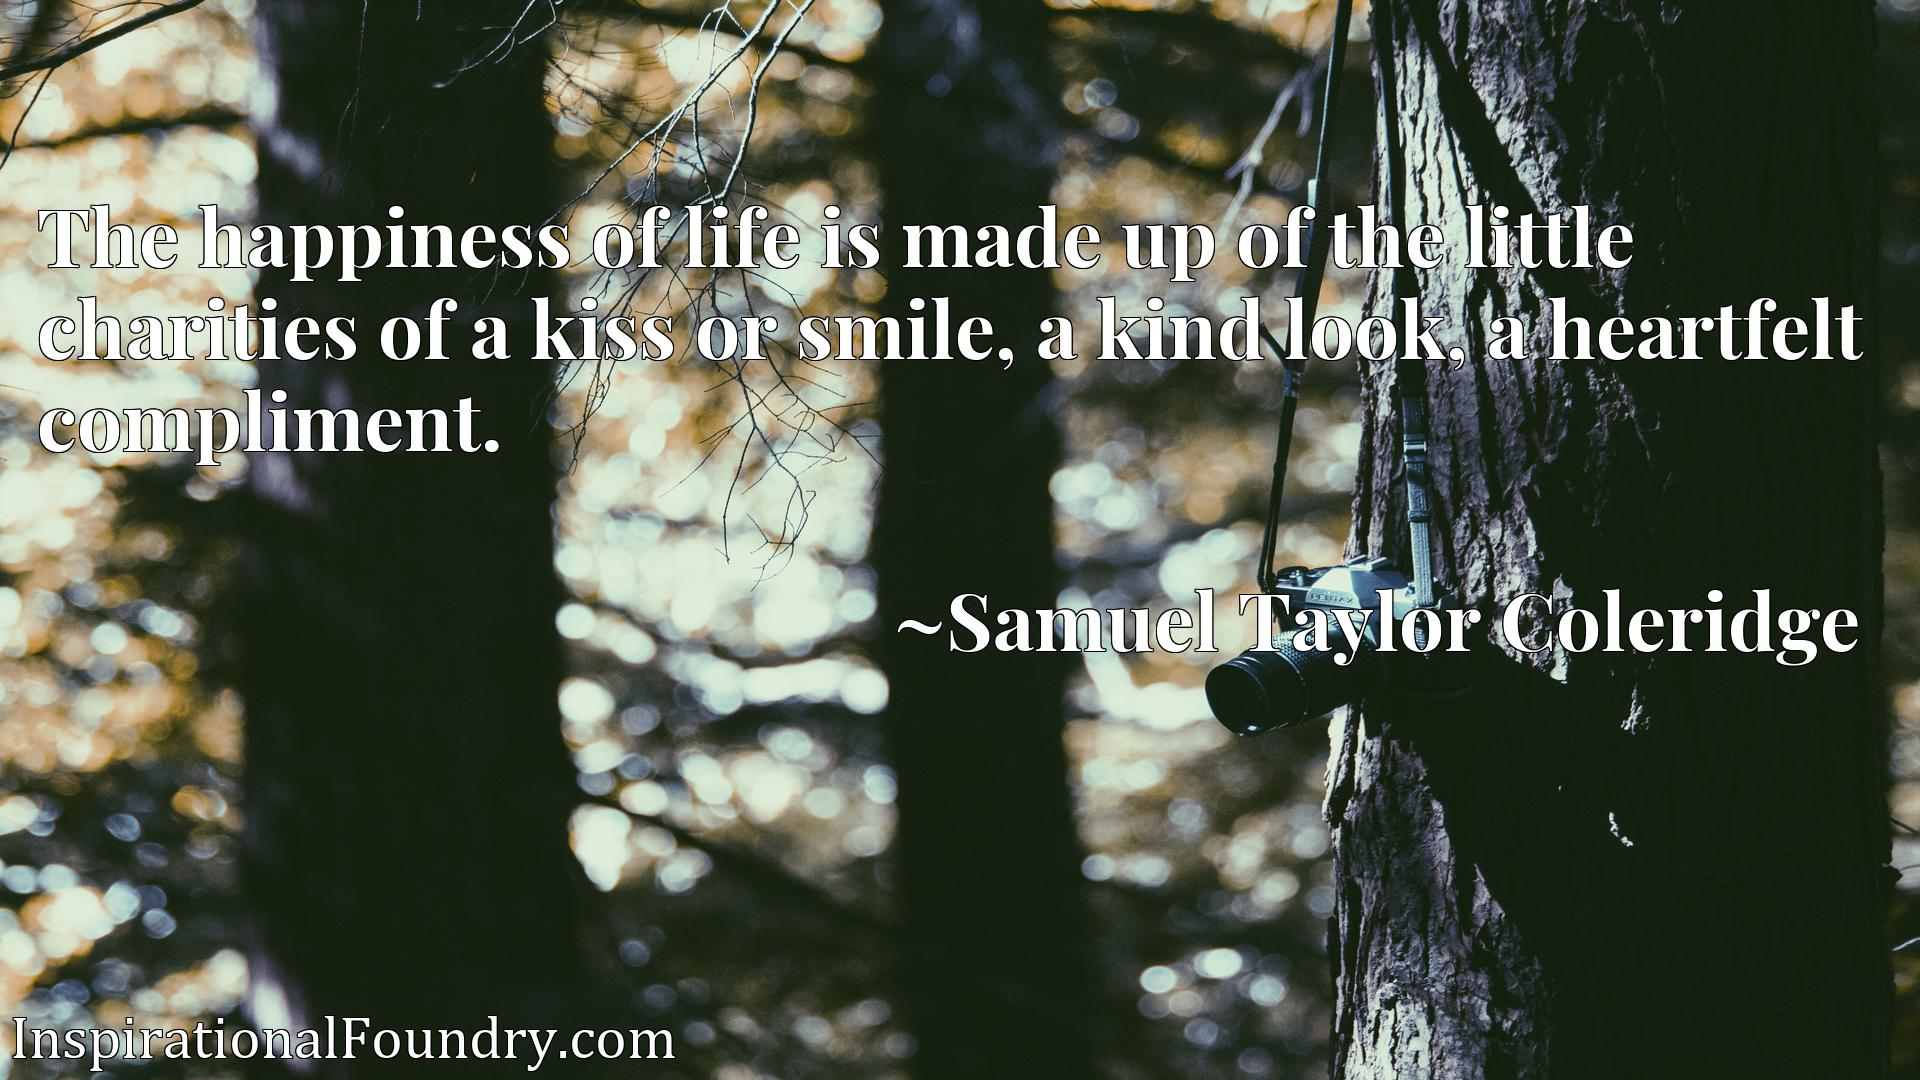 Quote Picture :The happiness of life is made up of the little charities of a kiss or smile, a kind look, a heartfelt compliment.